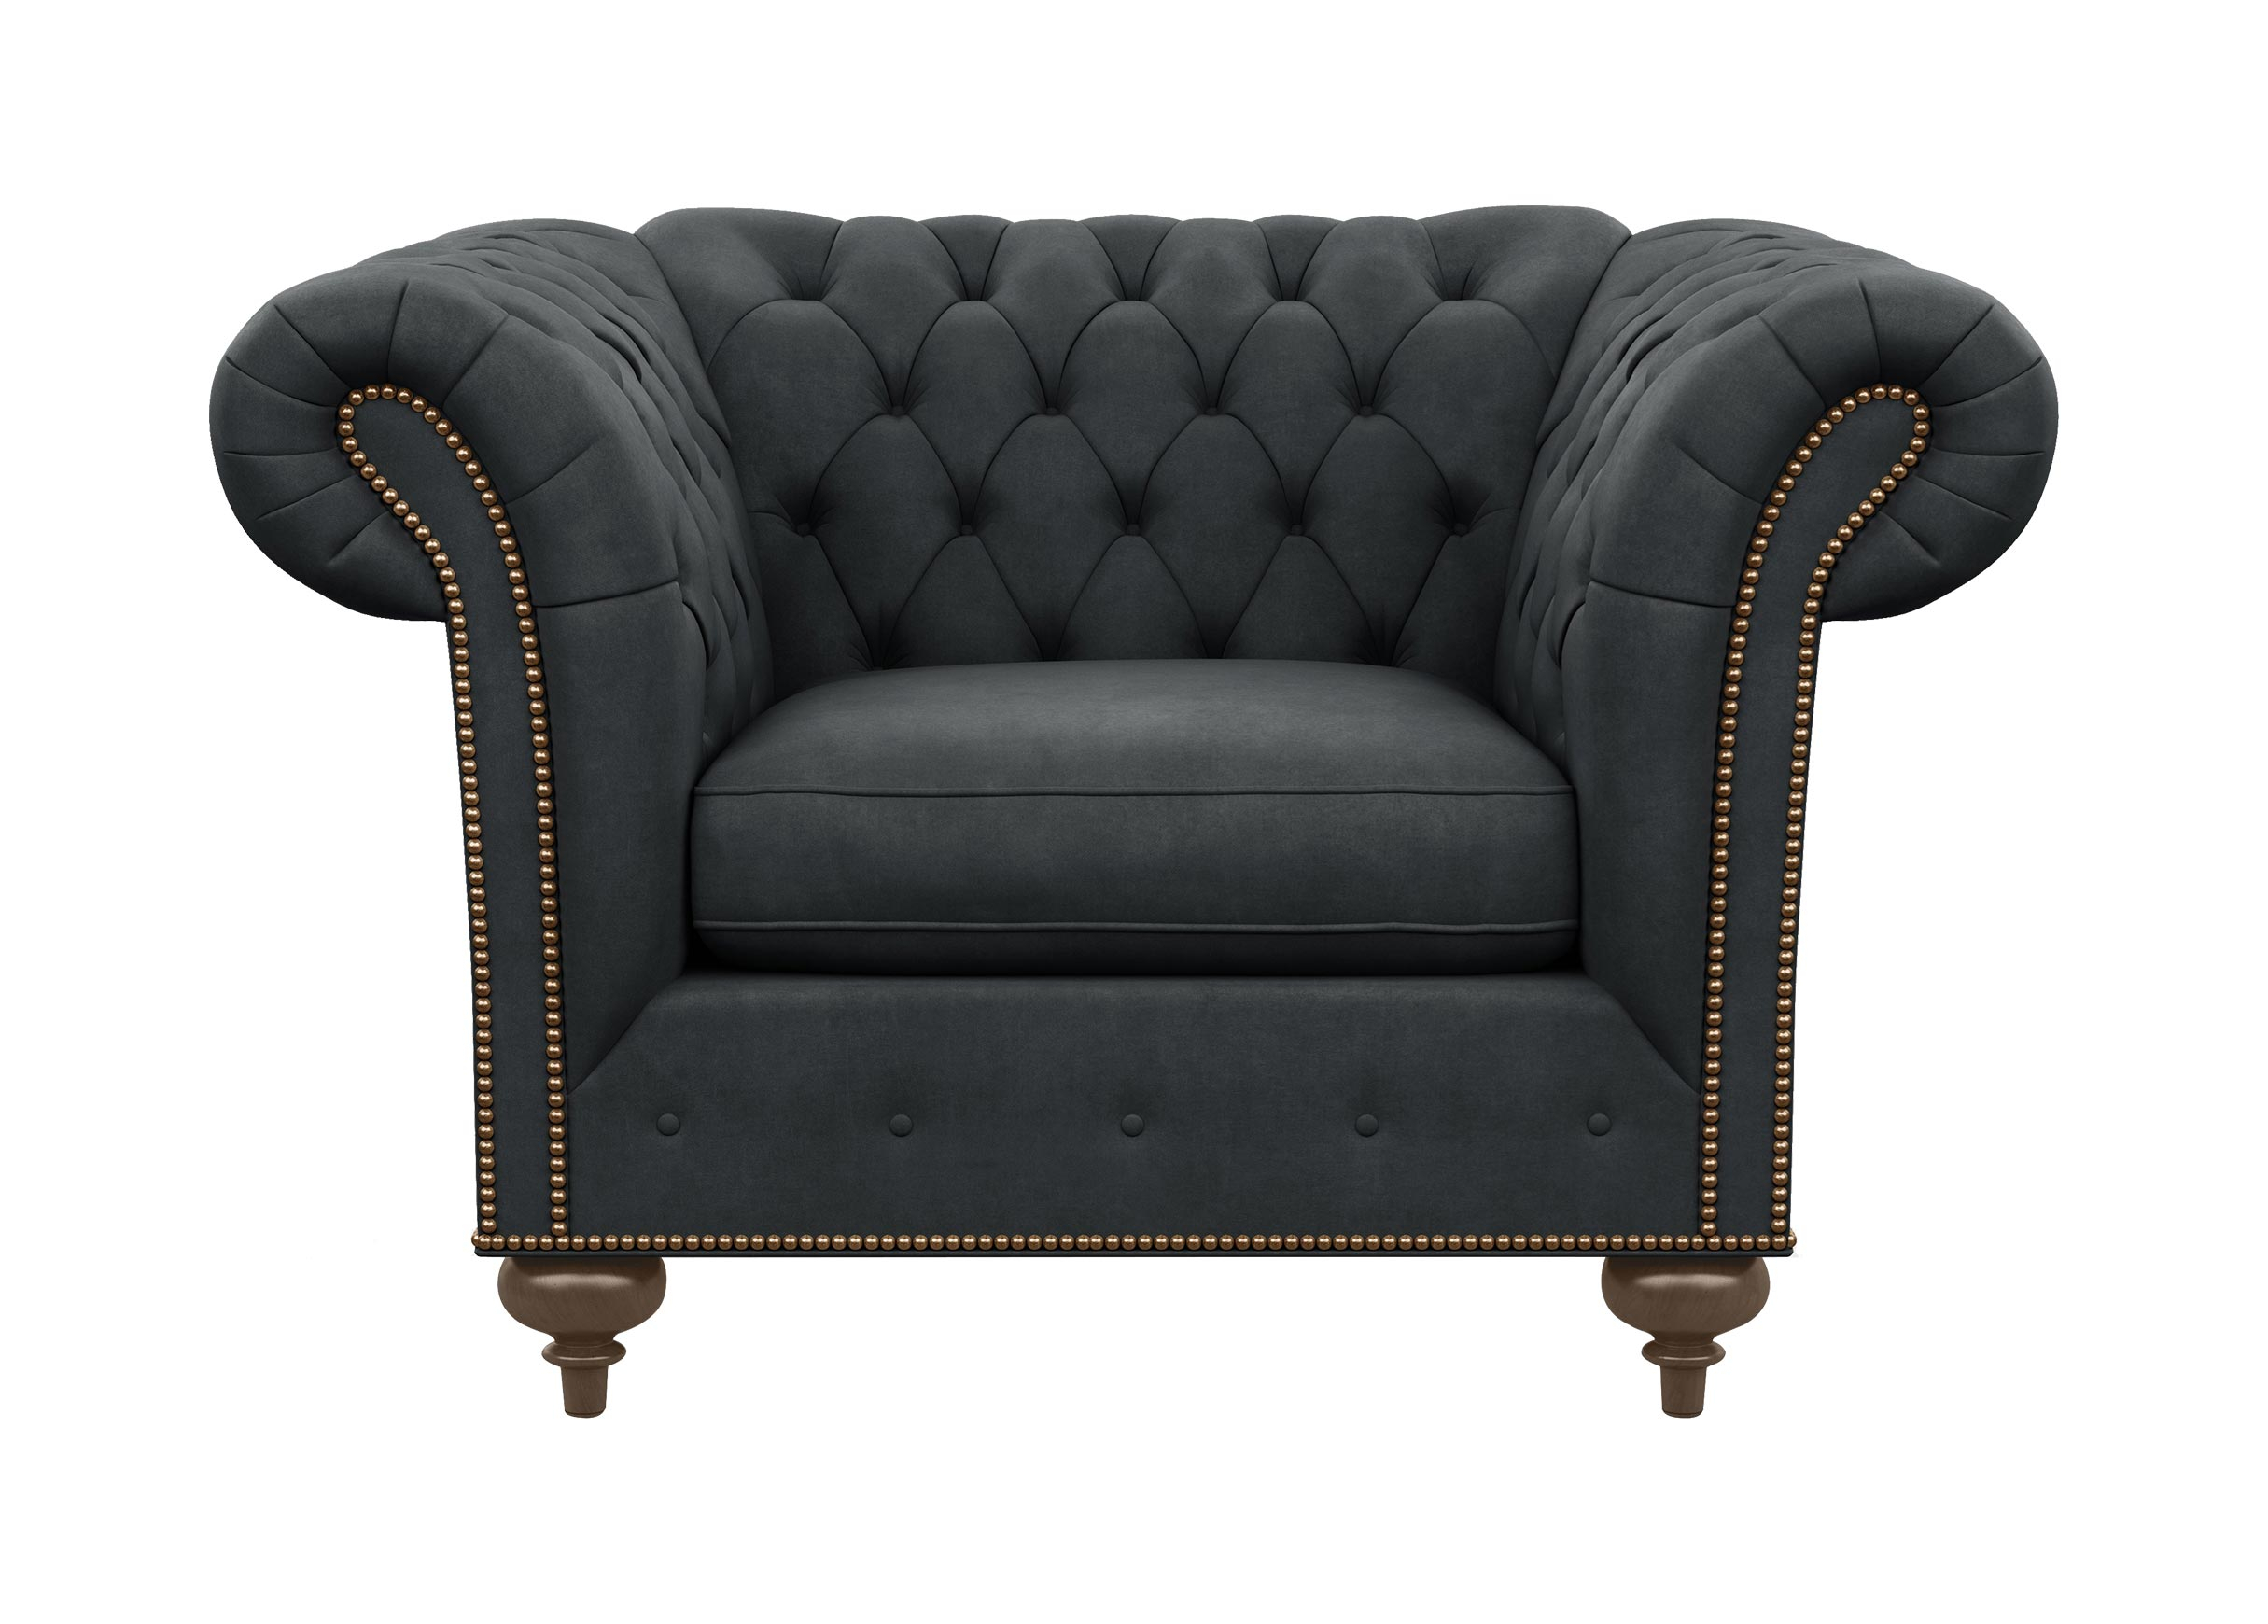 Mansfield Chair | Chairs & Chaises | Ethan Allen Inside Mansfield Graphite Velvet Sofa Chairs (View 16 of 25)